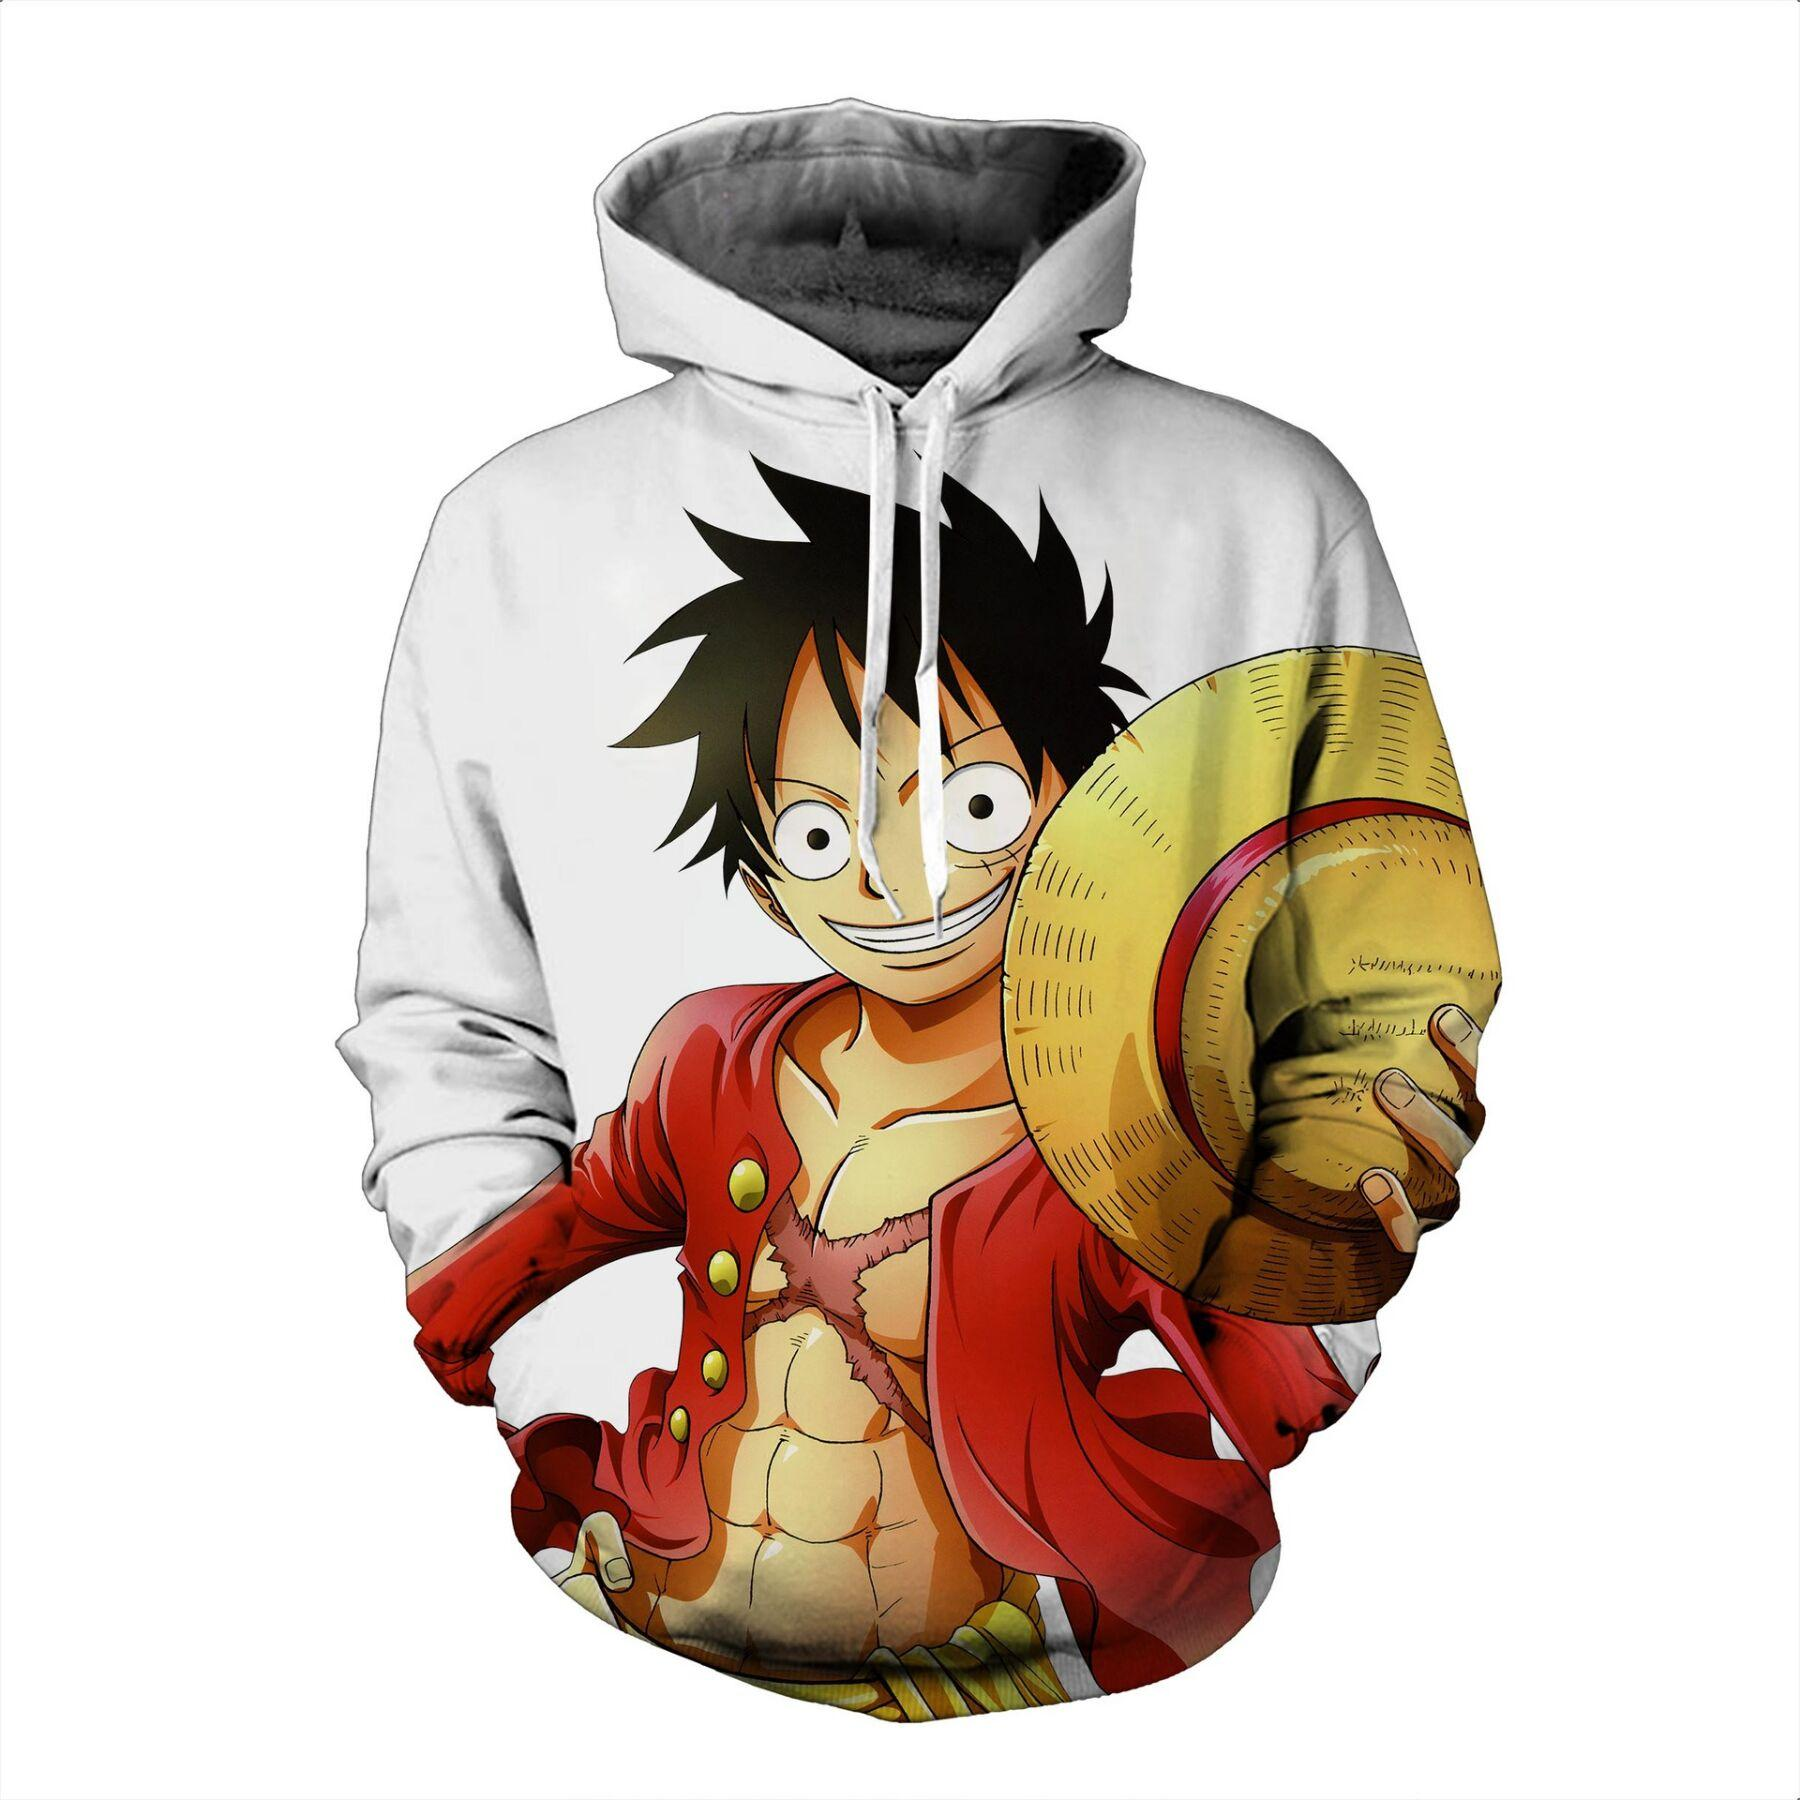 Newest Japan Anime Straw Hat Luffy of One Piece Hoodies 3D Print Clothing Women/Men Unisex Funny 3D Hoodies Casual Pullovers Tops K540